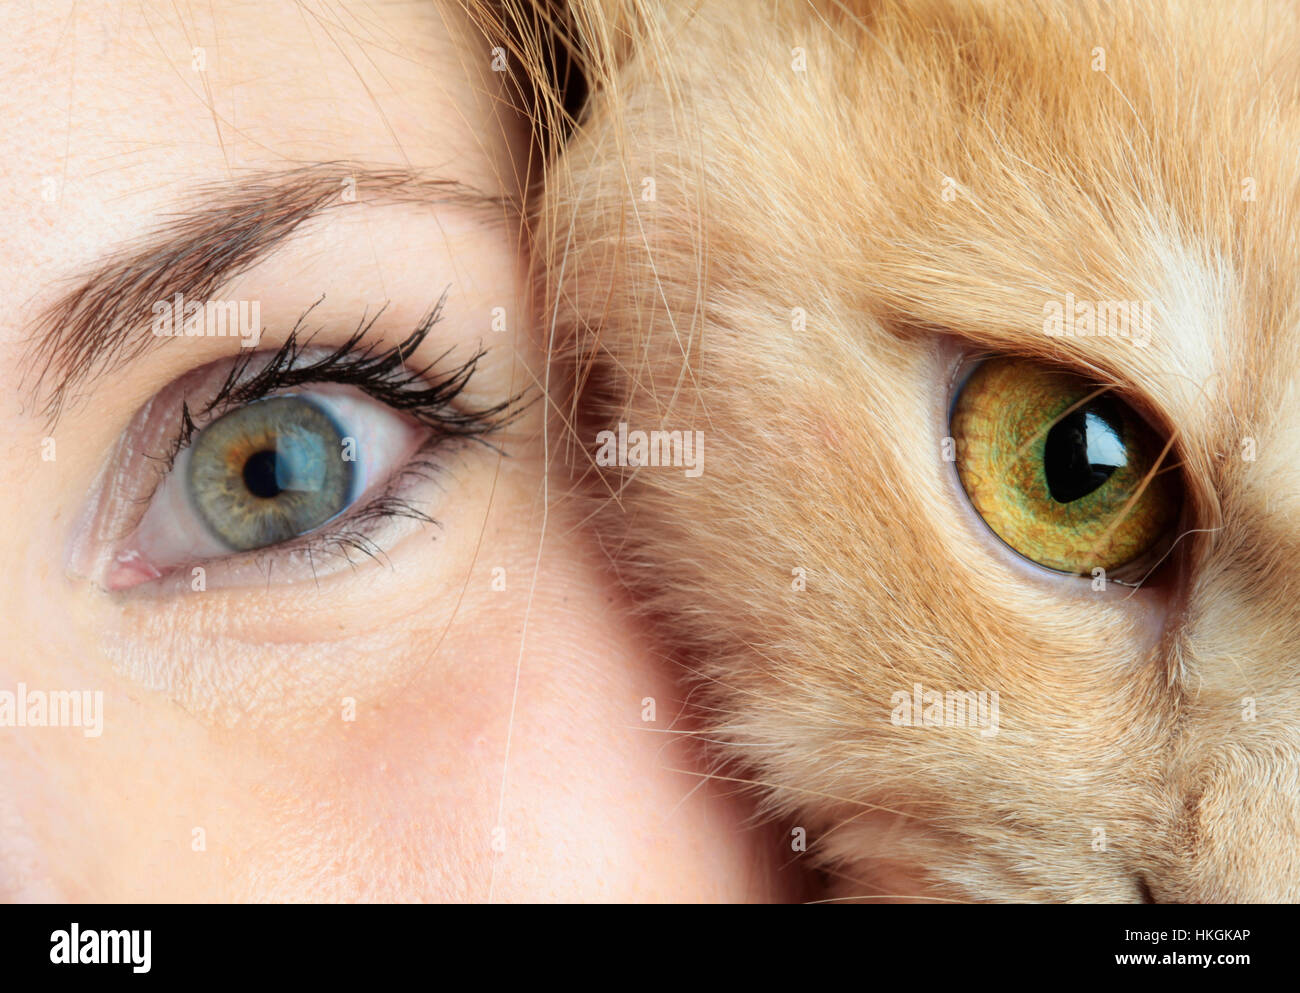 Human face with cat face together in studio - Stock Image